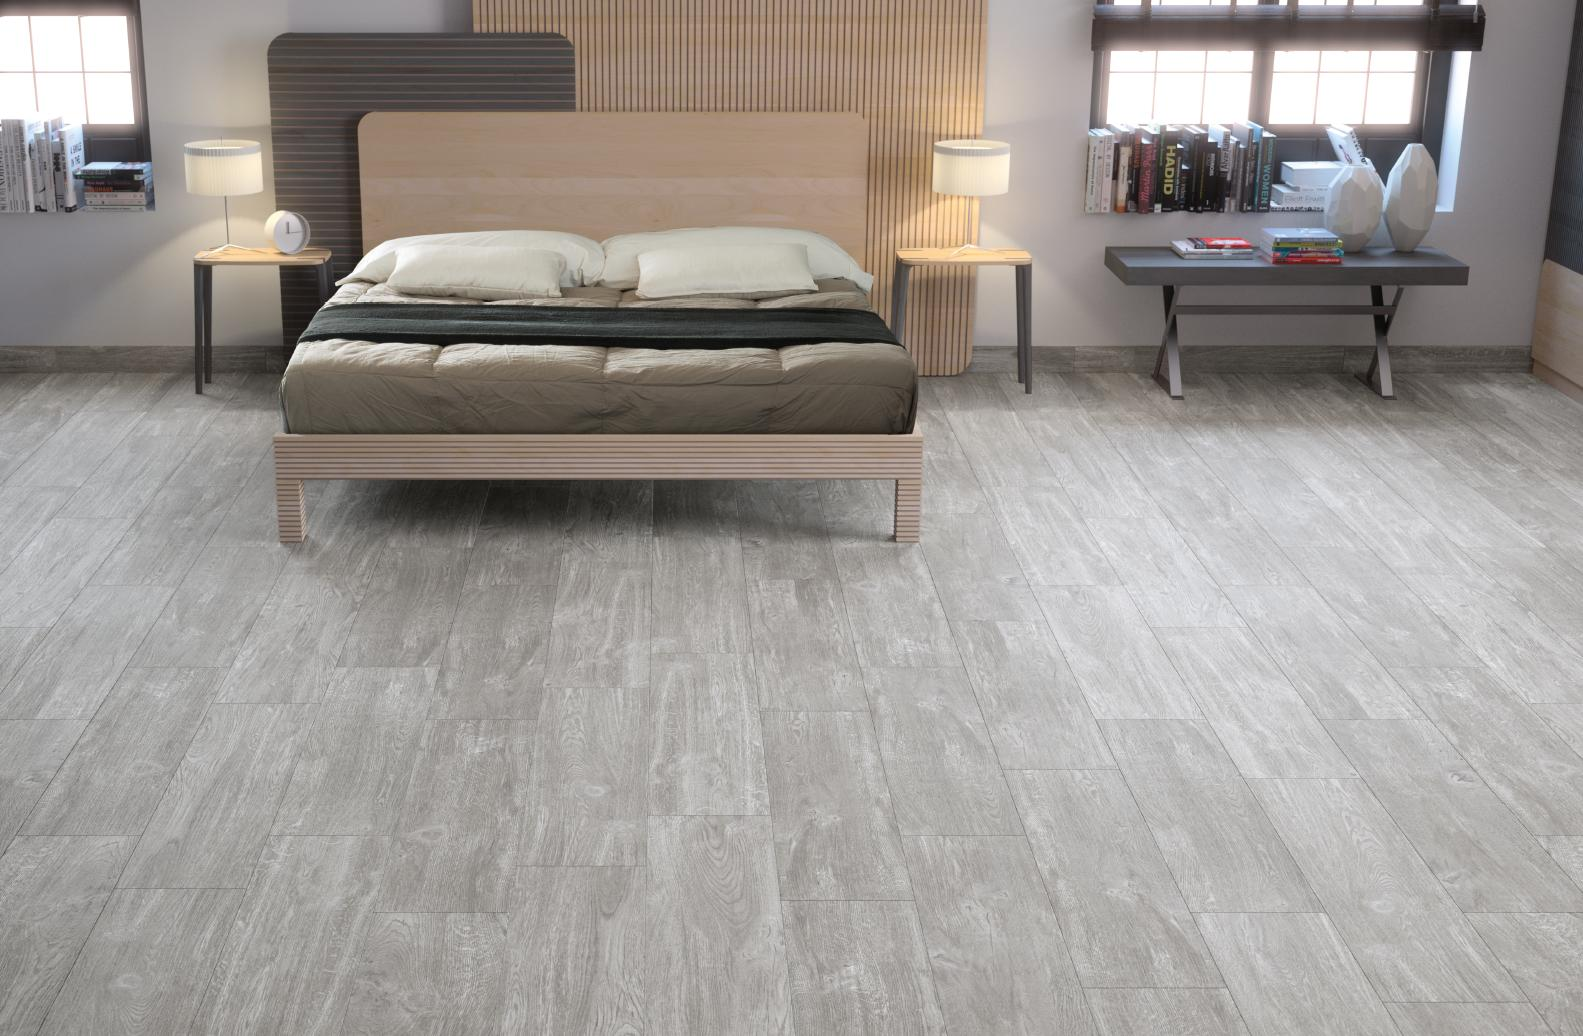 Porcelanico imitaci n madera con relieve clickdecormadrid for Suelo porcelanico gris